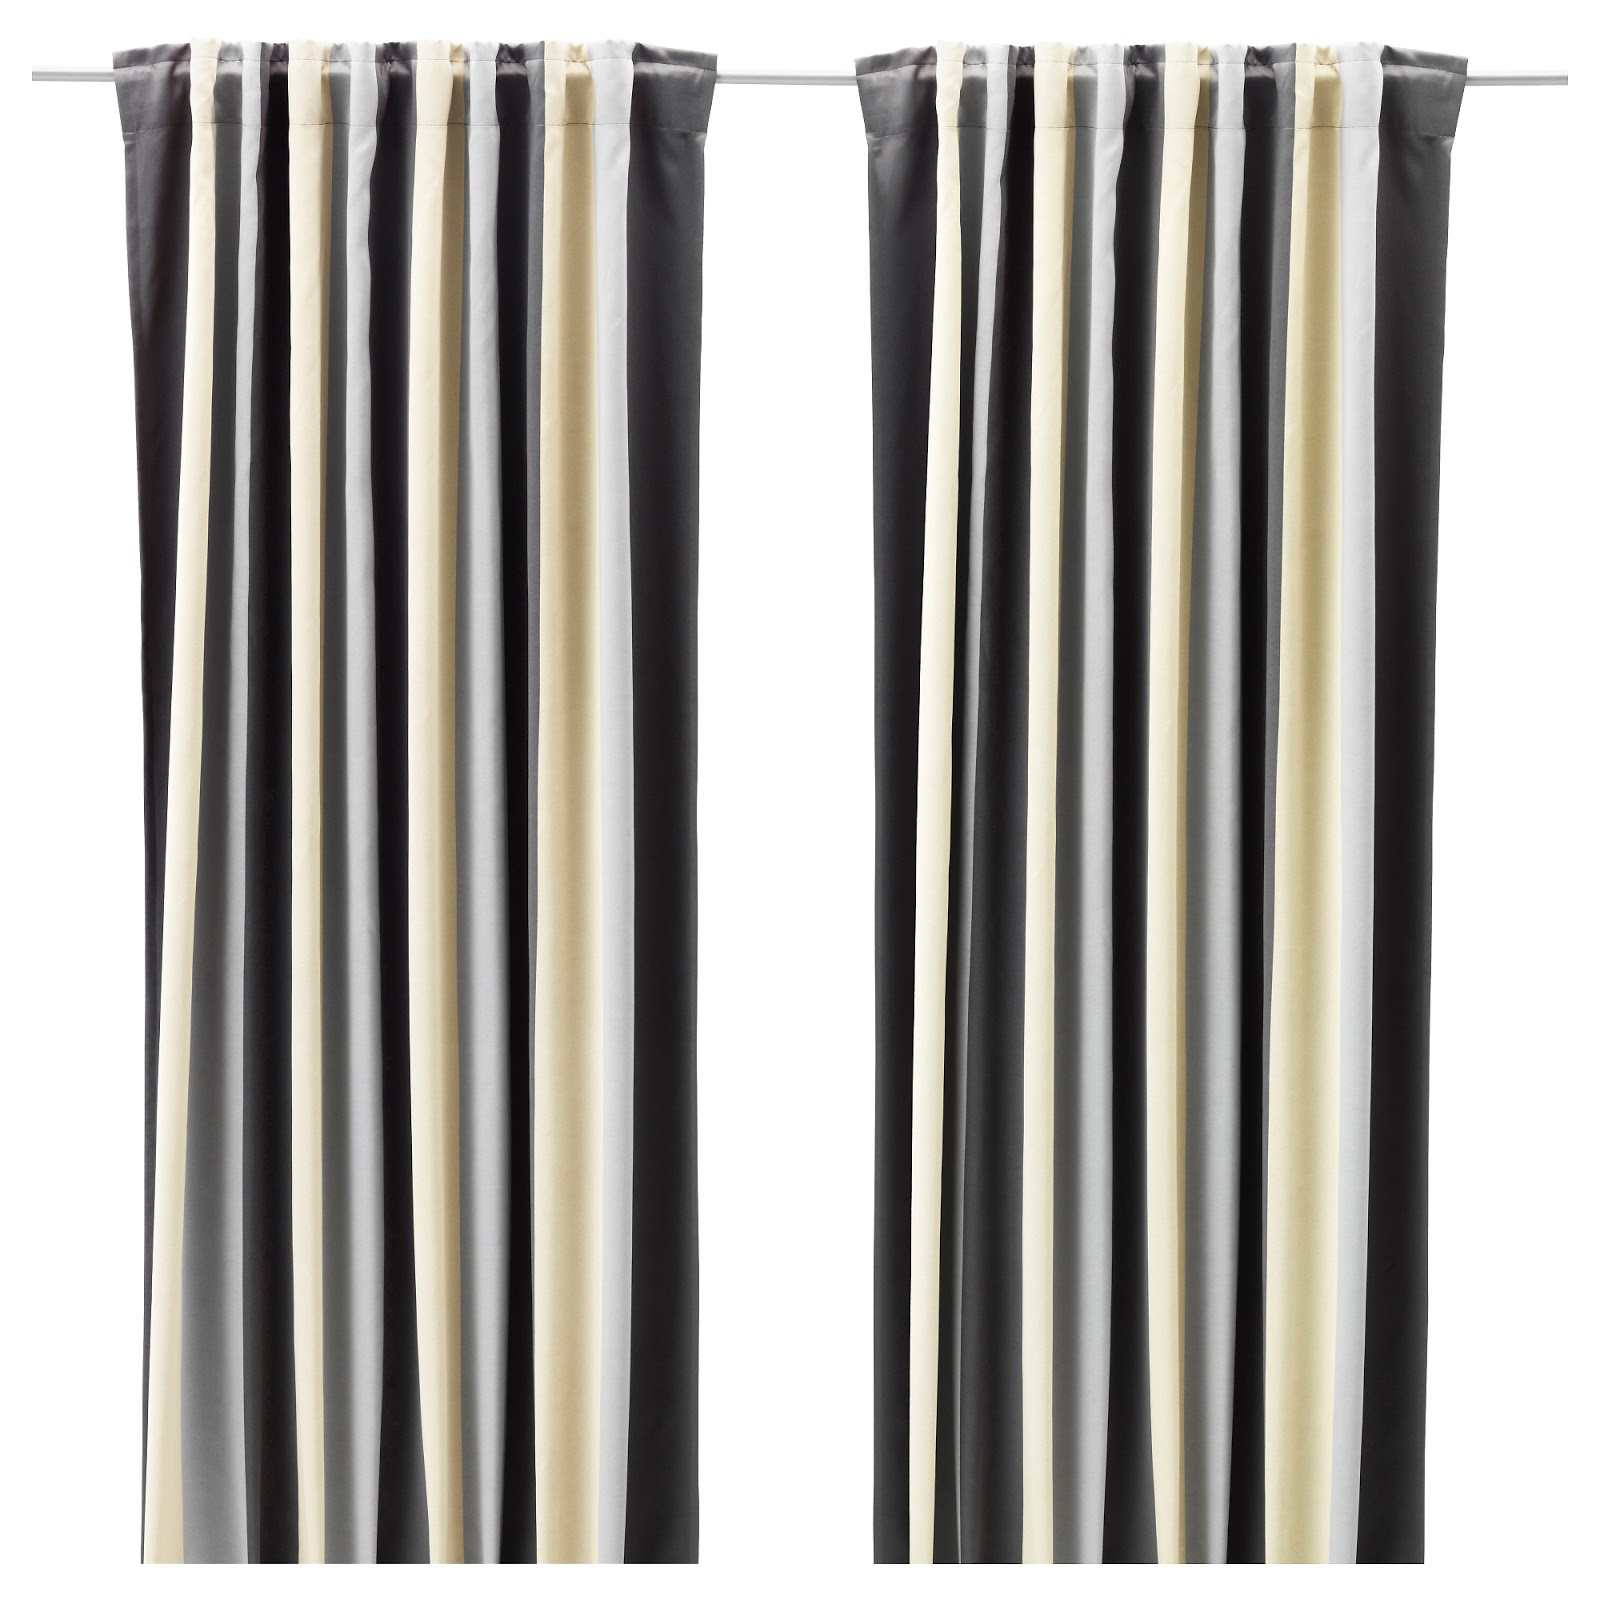 Hang Curtains Without Drilling Holes Rod Rods Net